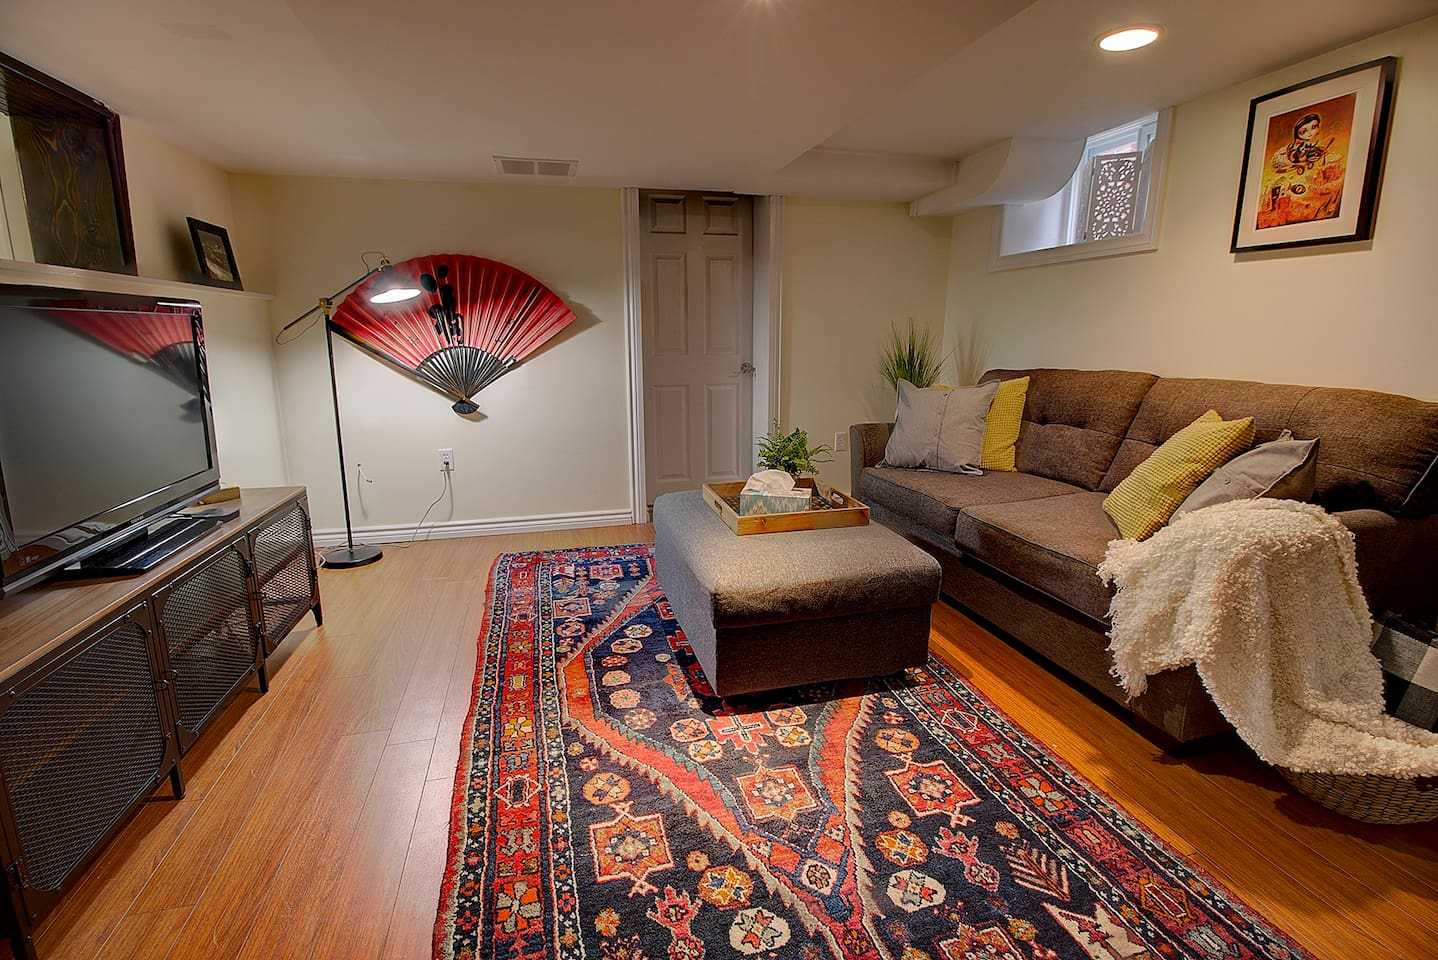 Living room with queen size pull out couch.